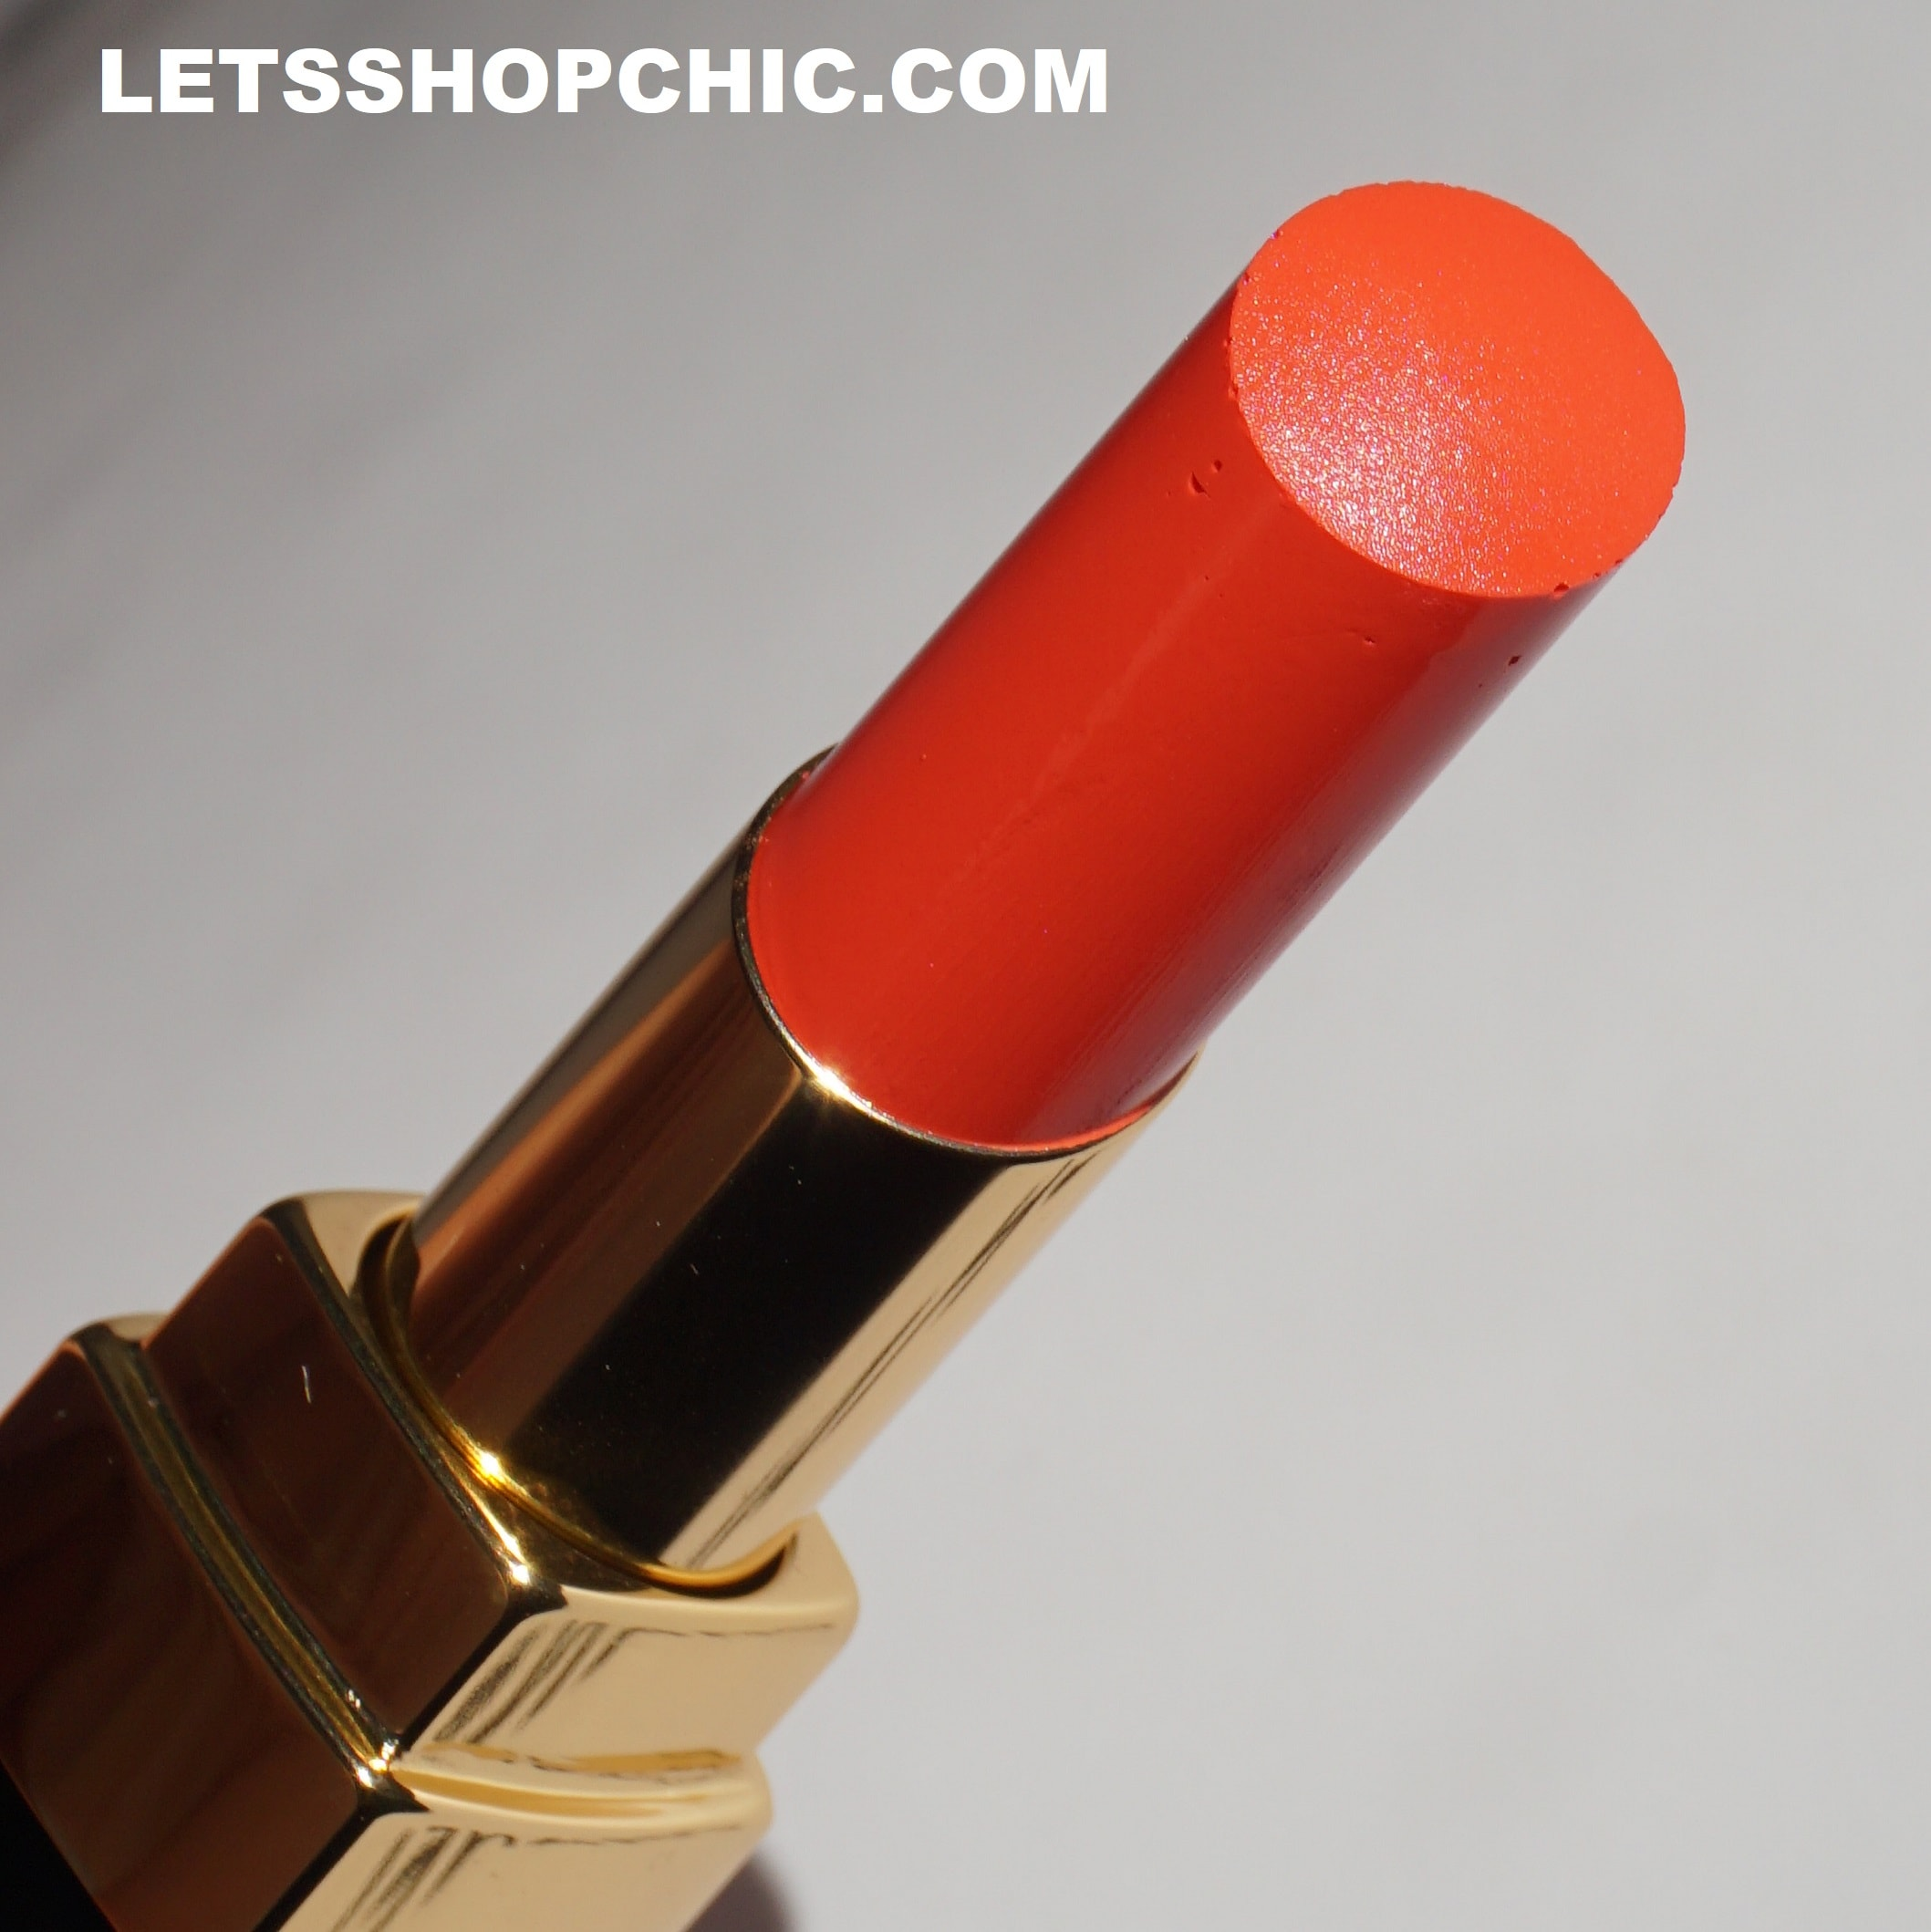 Chanel Rouge Coco Flash Lipstick 114 Ondée